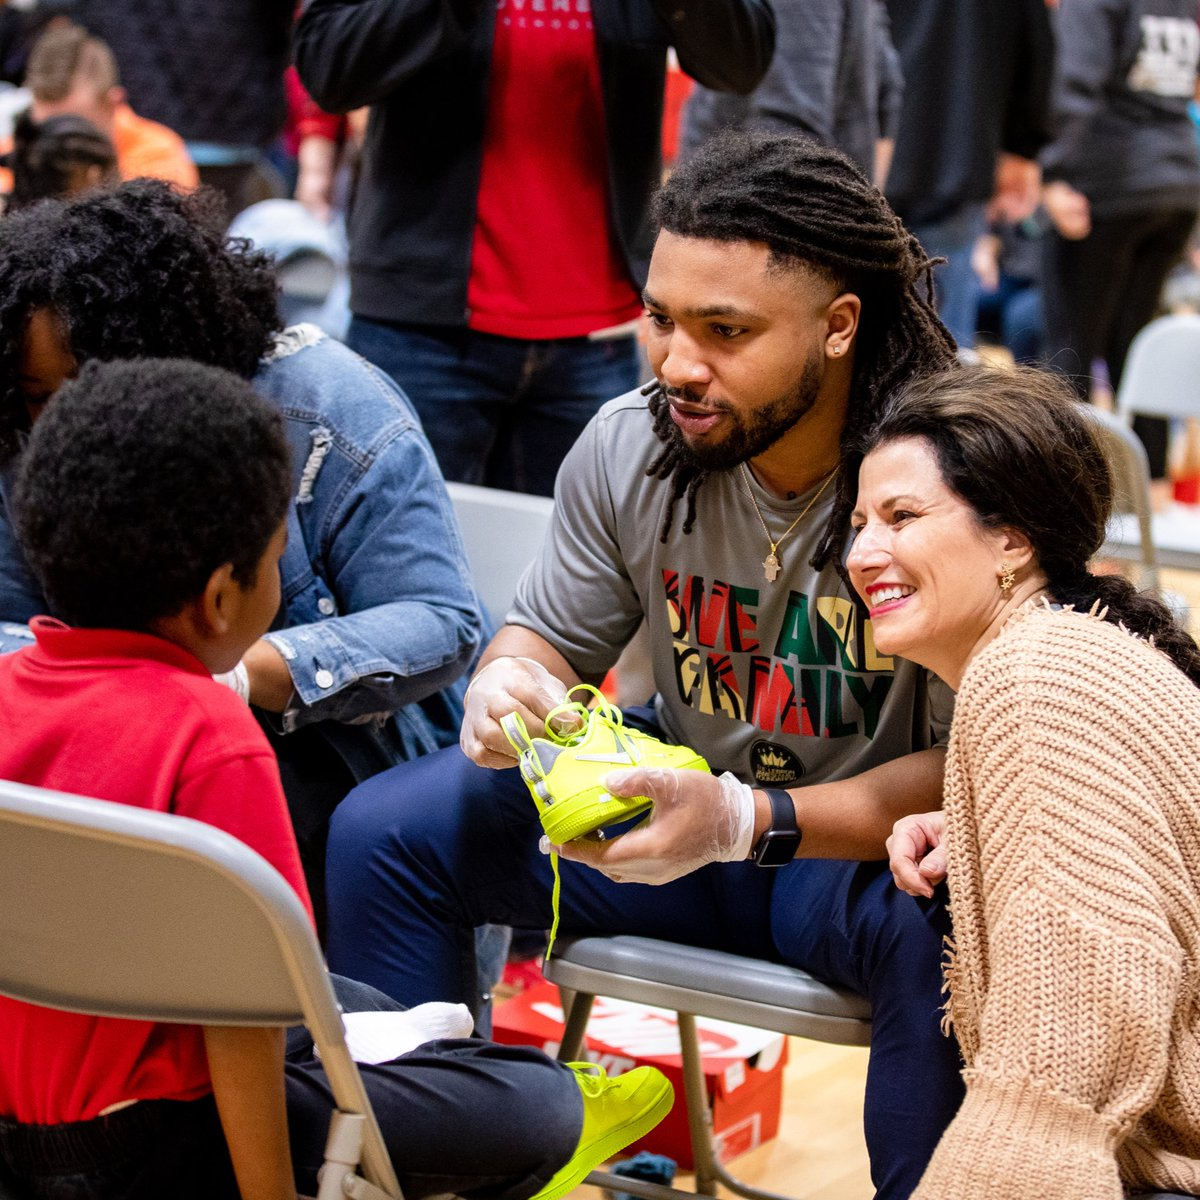 LeBron James continues tradition of bringing 23 students to All-Star weekend